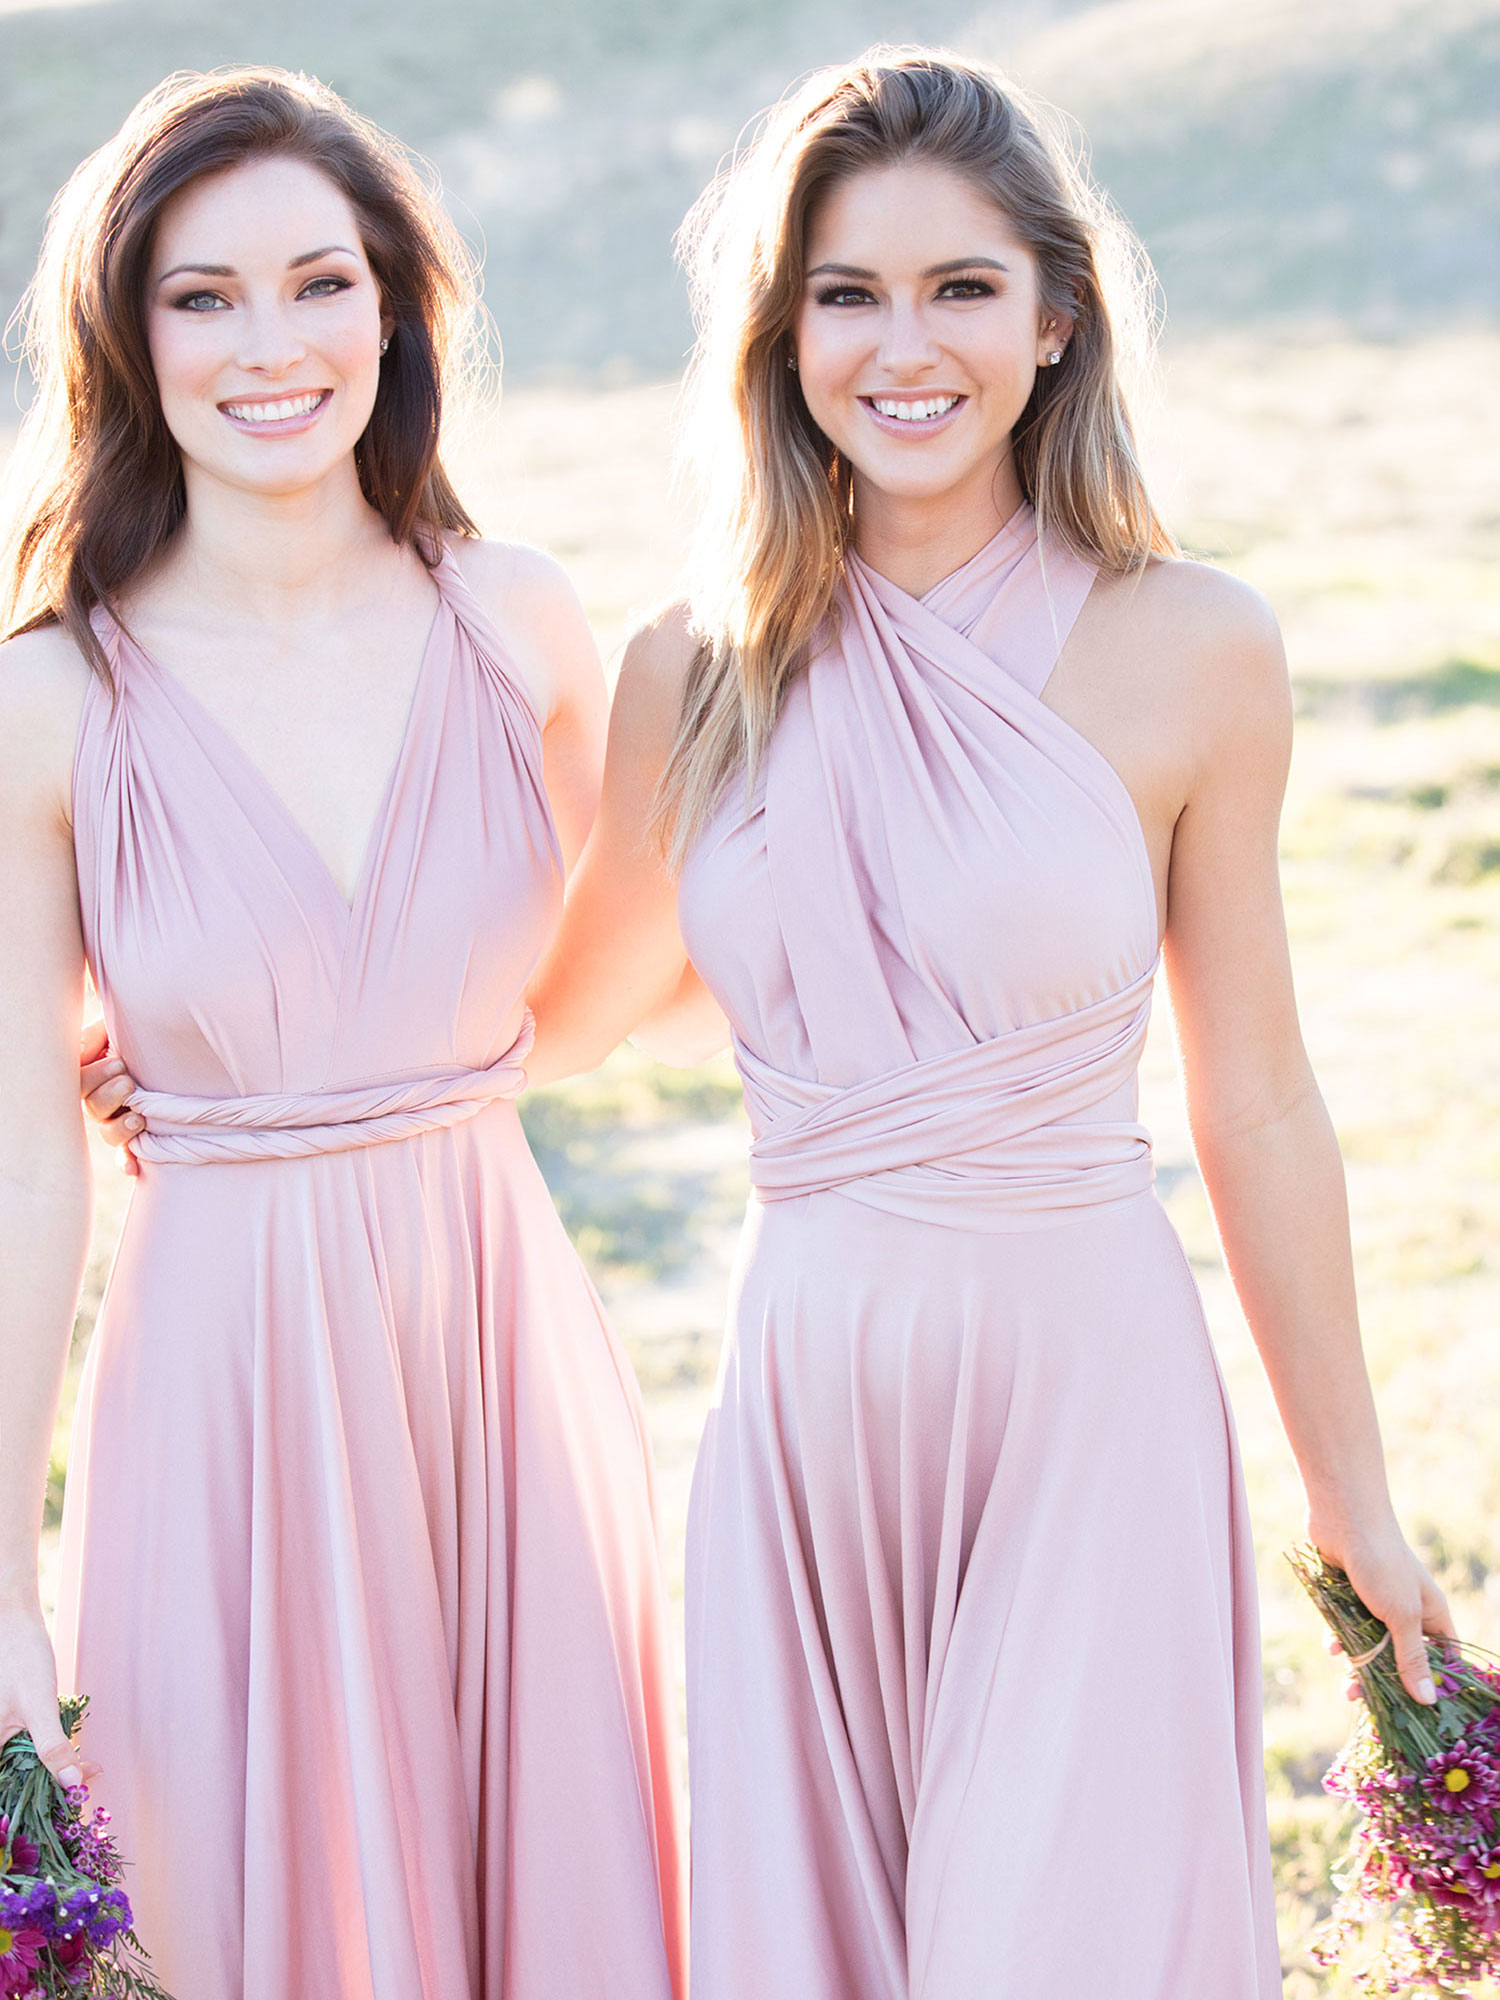 50f78515ebe New Line of Allure Bridesmaid Dresses - Molly s Bridal Boutique ...